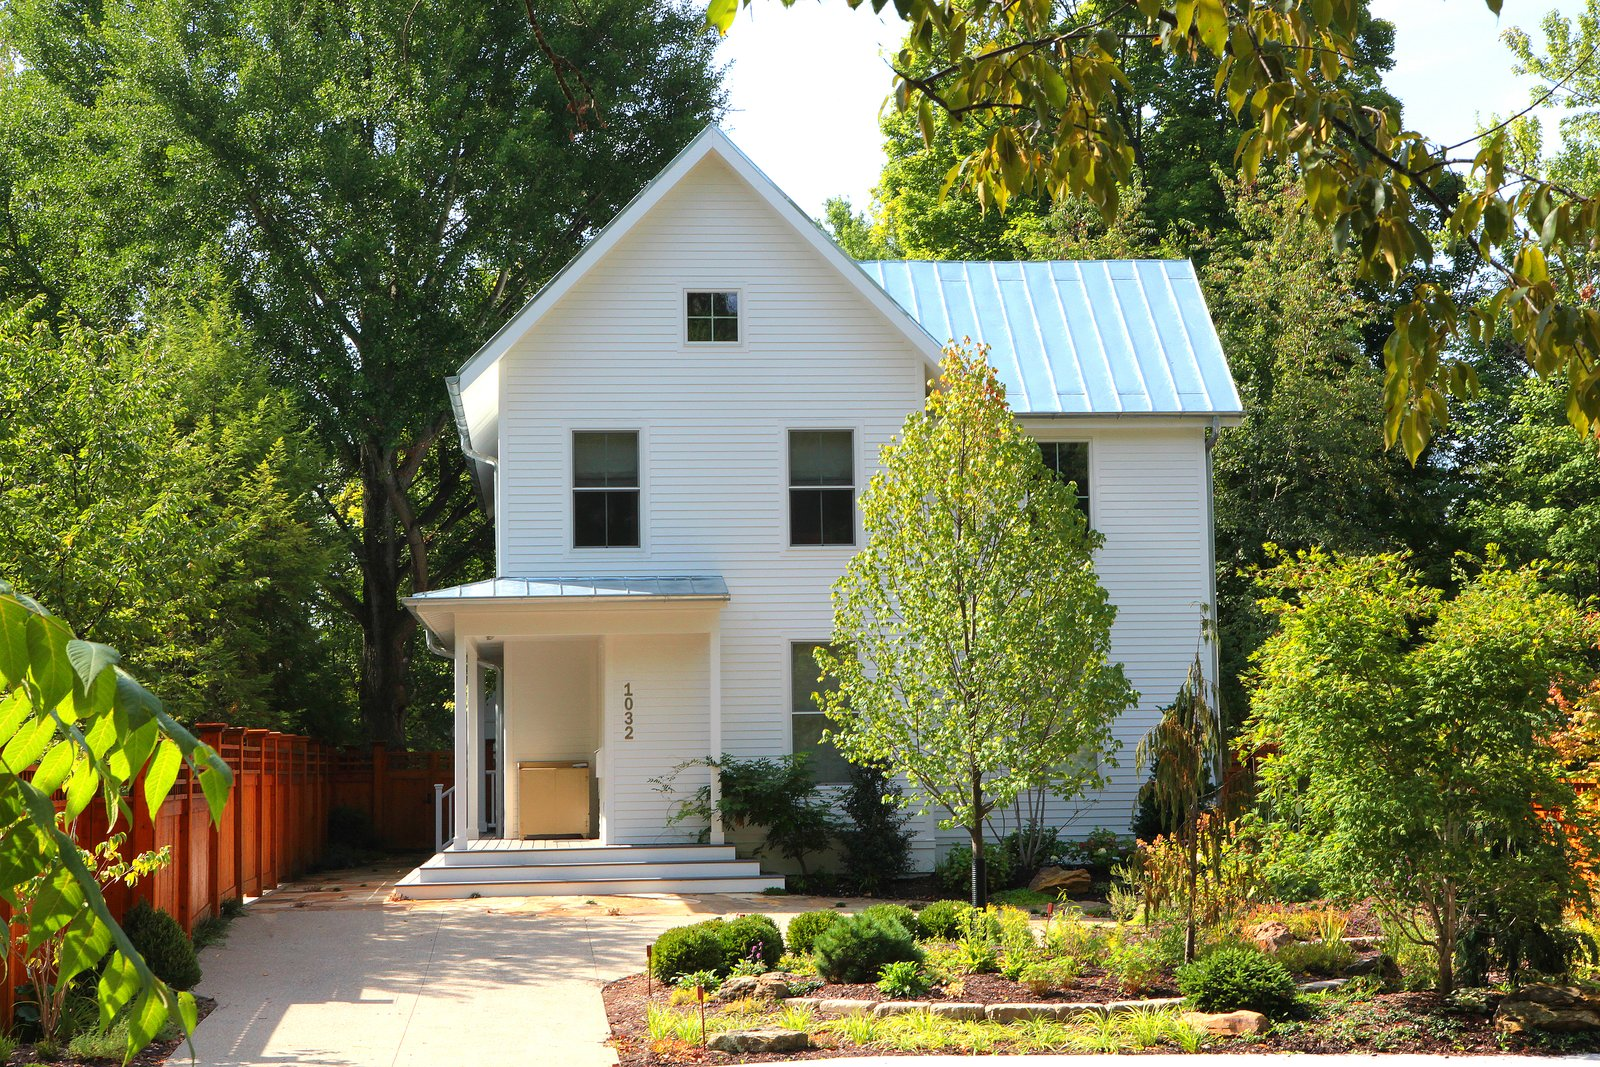 Exterior, House Building Type, Farmhouse Building Type, Gable RoofLine, and Metal Roof Material  Urban Farmhouse